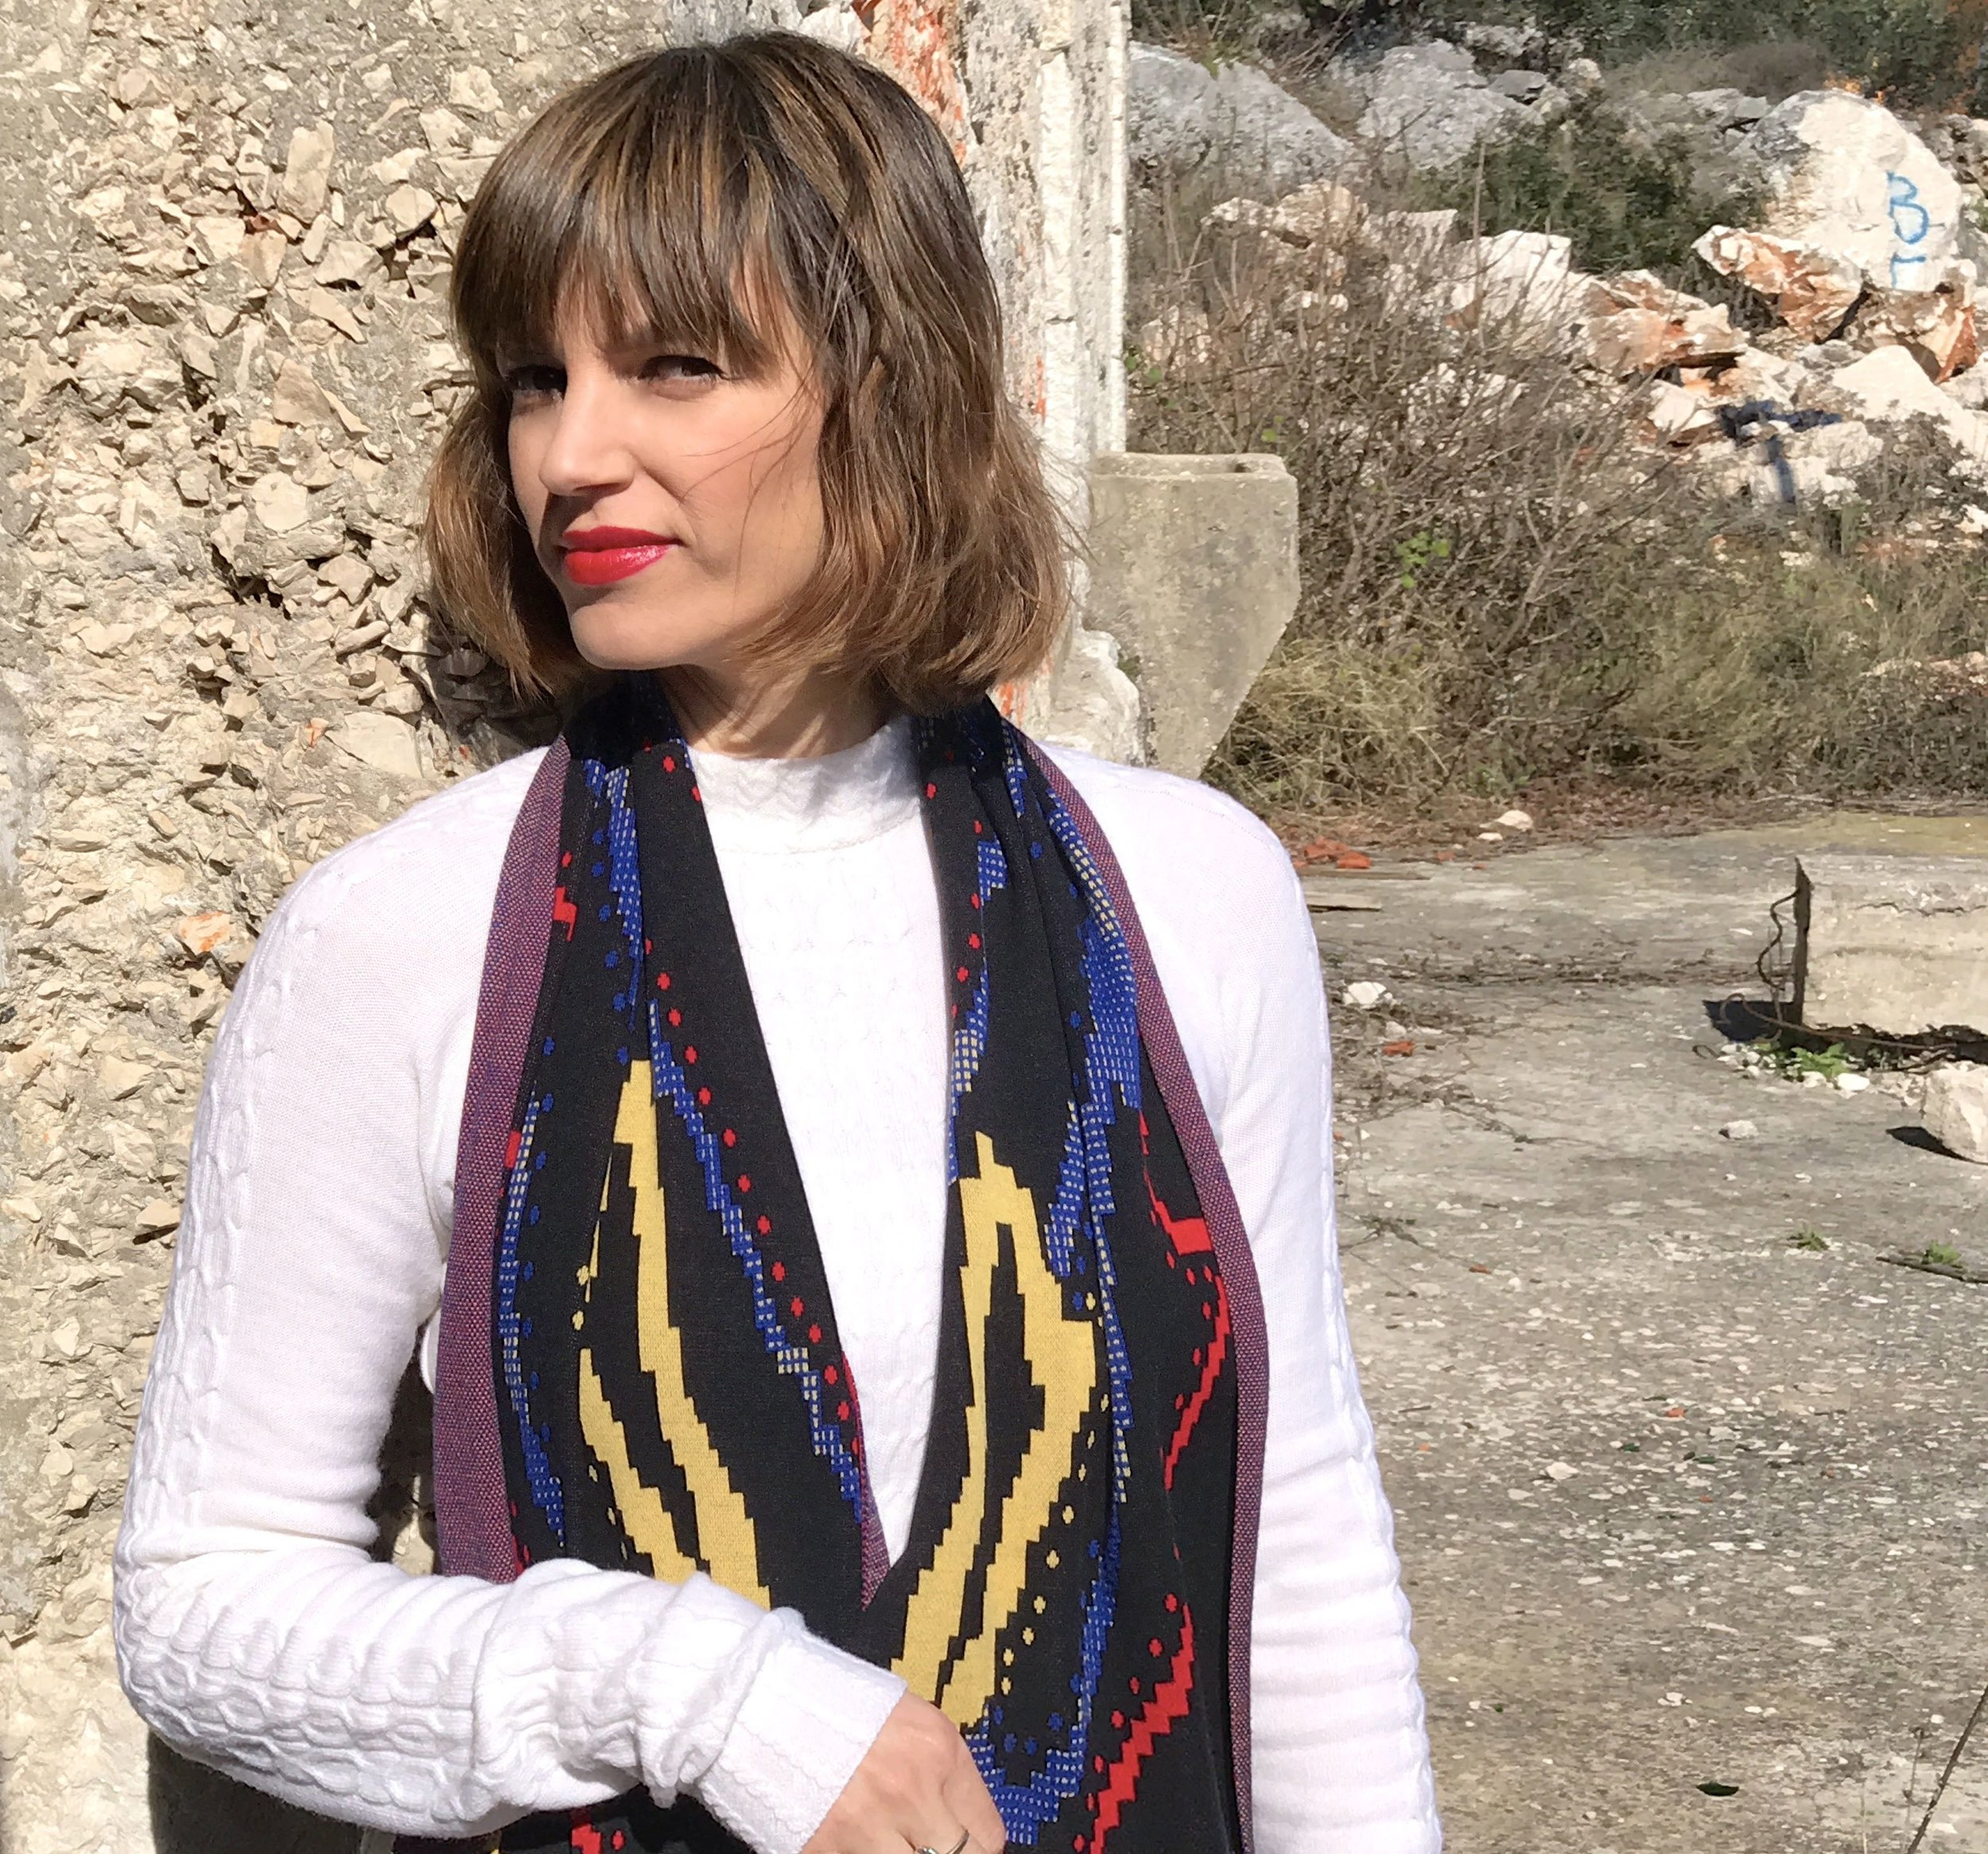 Susana Bettencourt sent me 2 beautiful garments, a white knitted dress and a colourful knitted scarf so I can wear it, feel it and style it not only for this blog post, but for different occasions. I styled it in different ways for you to see and to fall in love with her design.